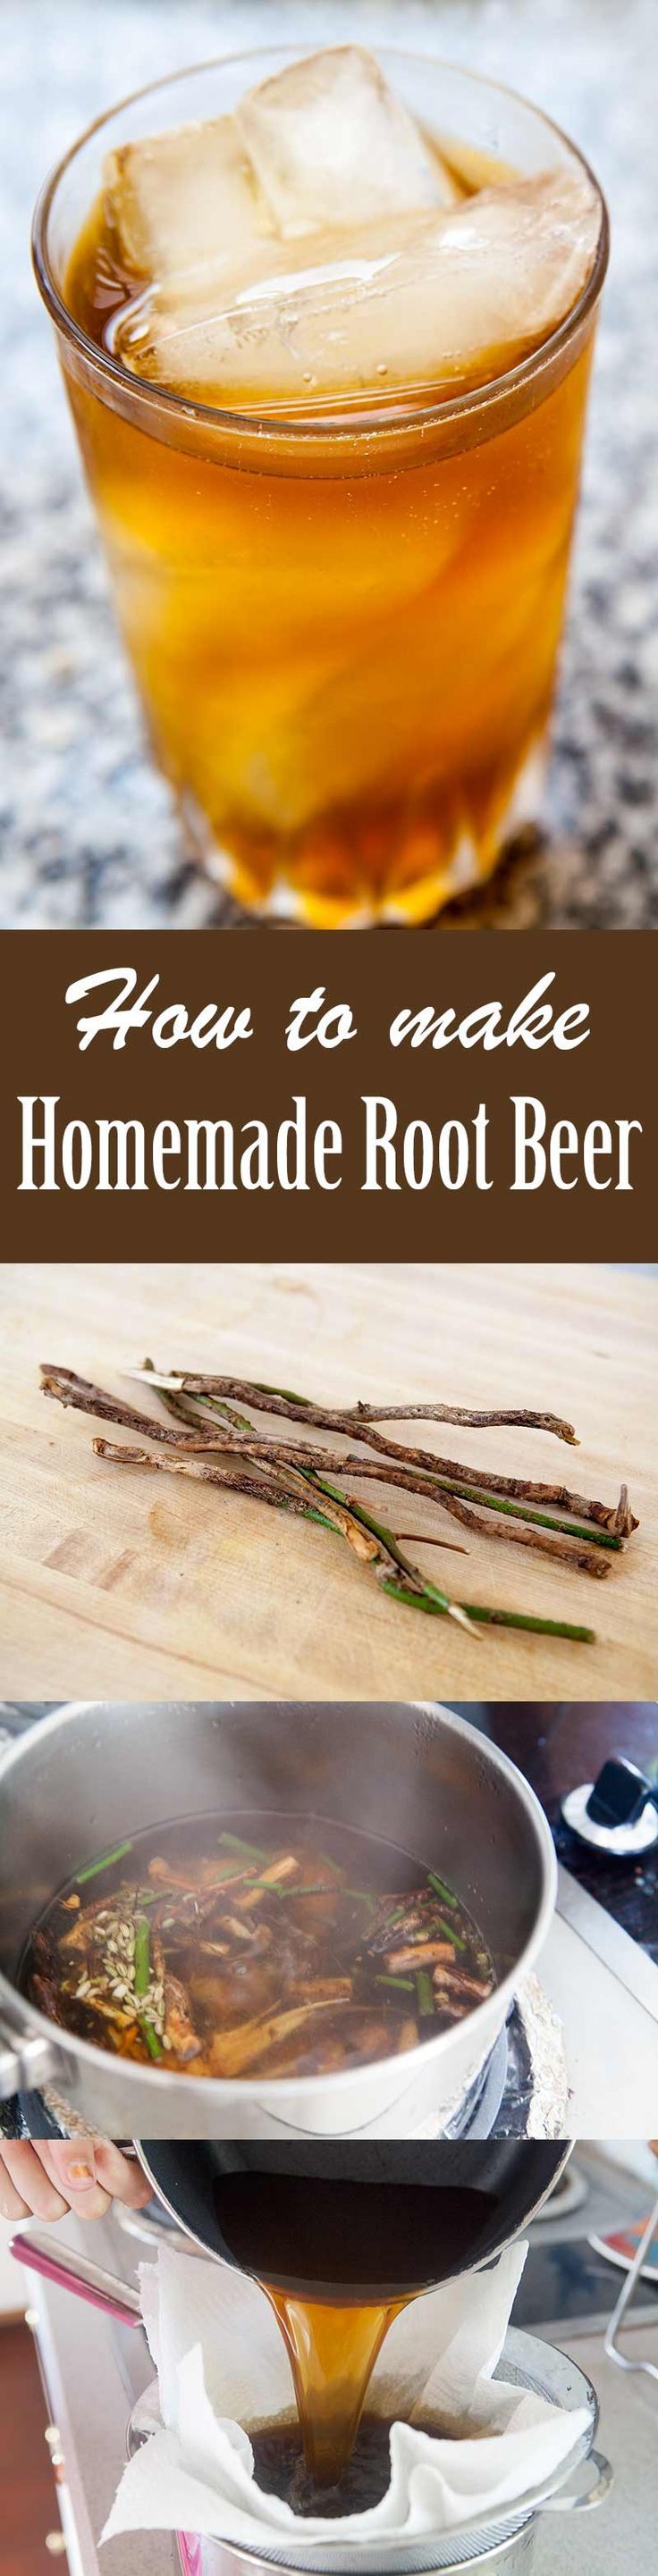 Homemade Root Beer, it's EASY! Kid-friendly version made with the roots of sassafras plants, spices, and molasses. #RootBeer #DIYrecipe #sassafras